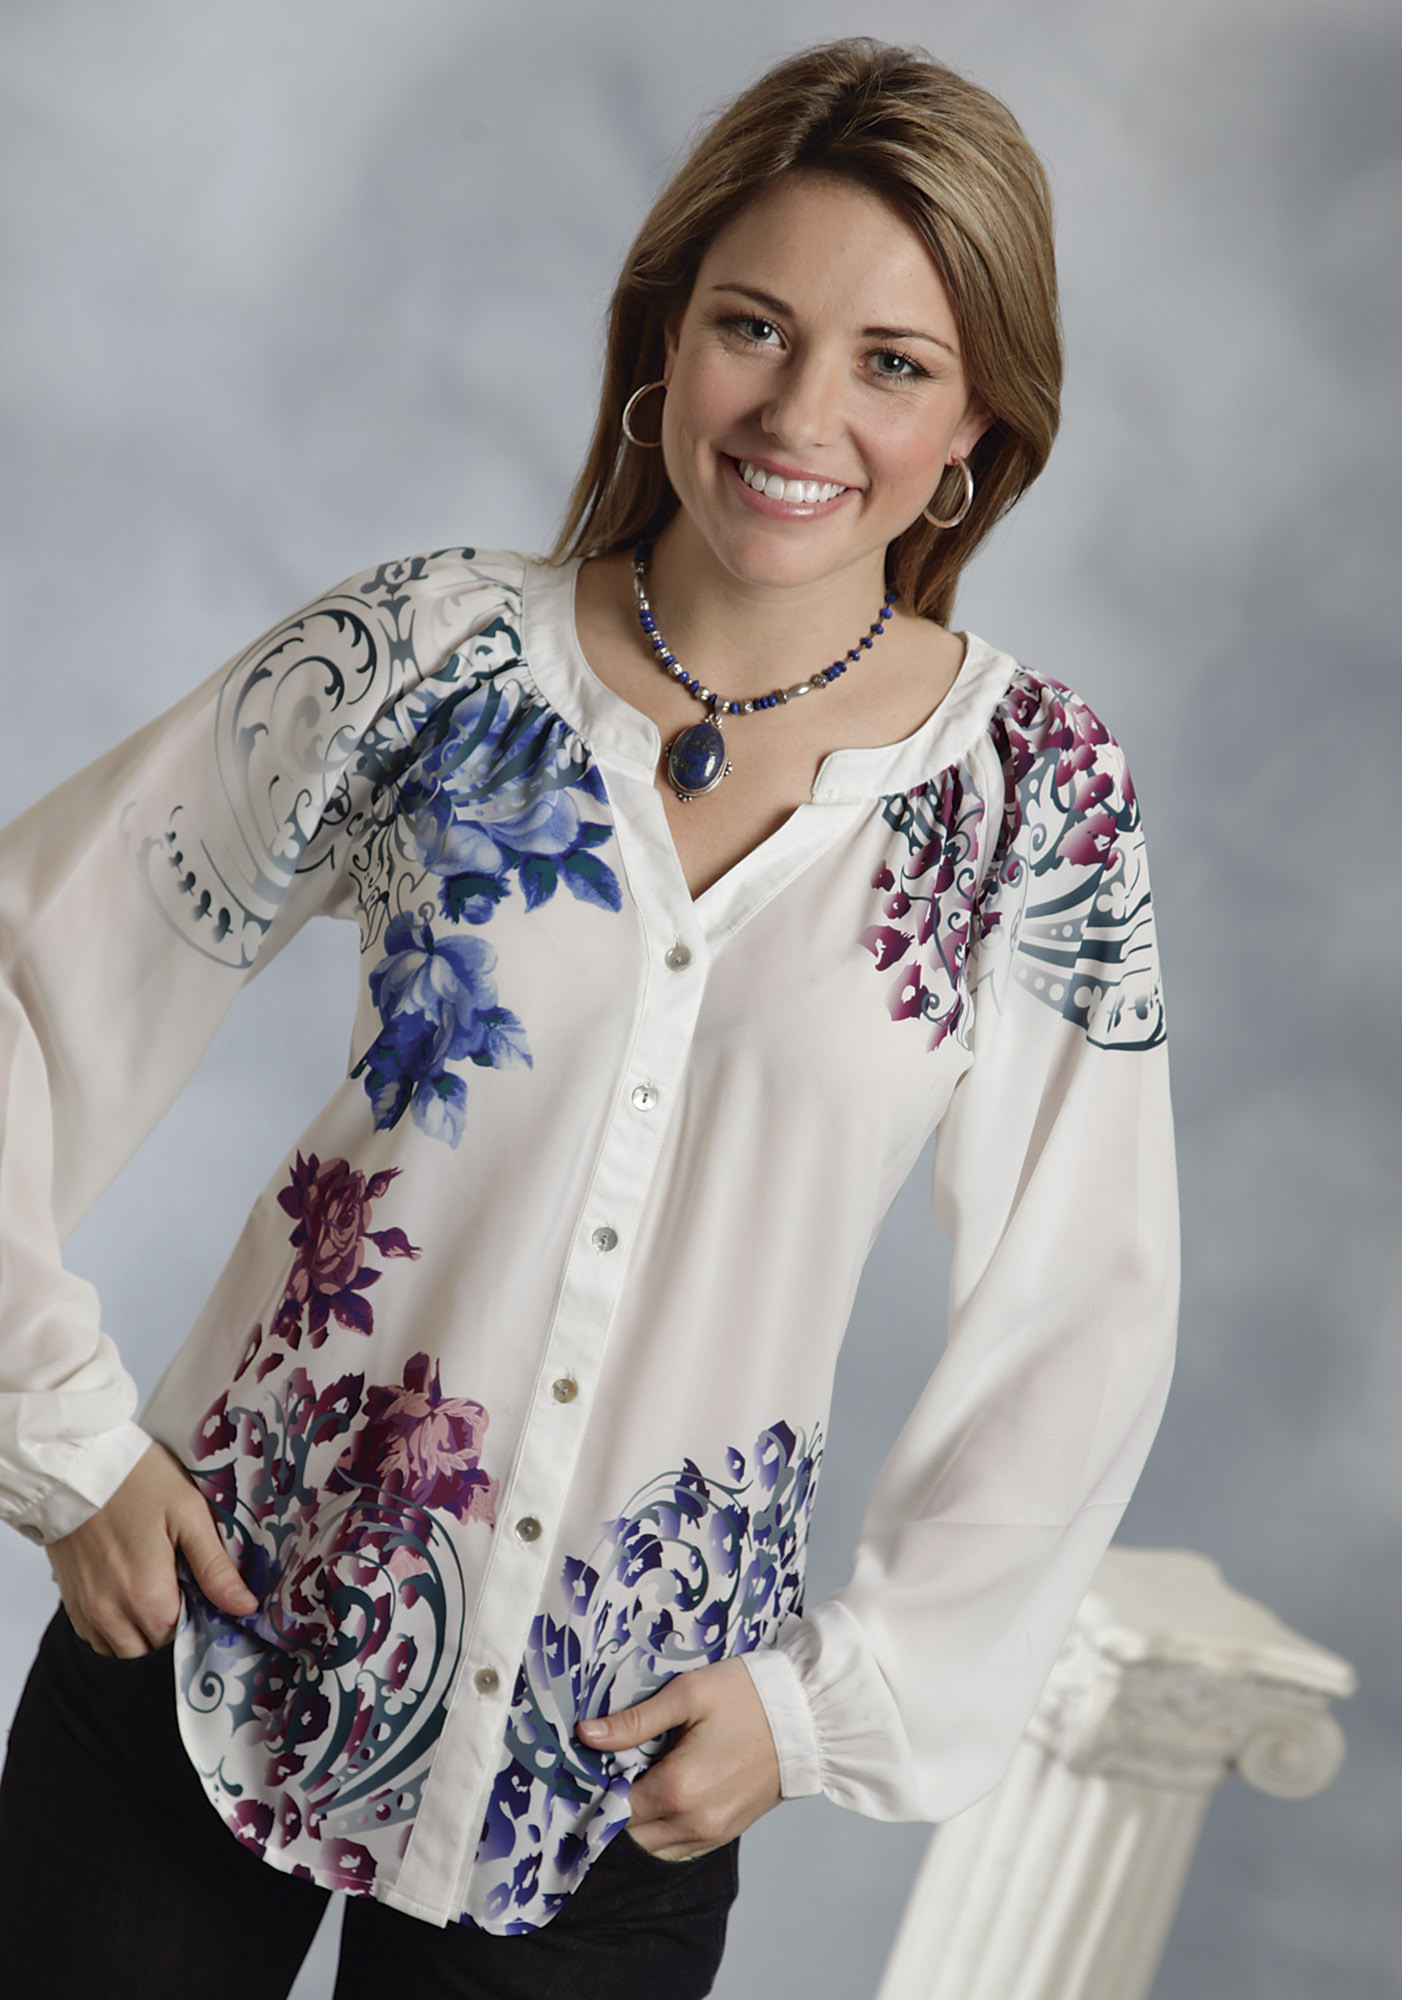 Collection Floral Blouse Womens Pictures - Reikian